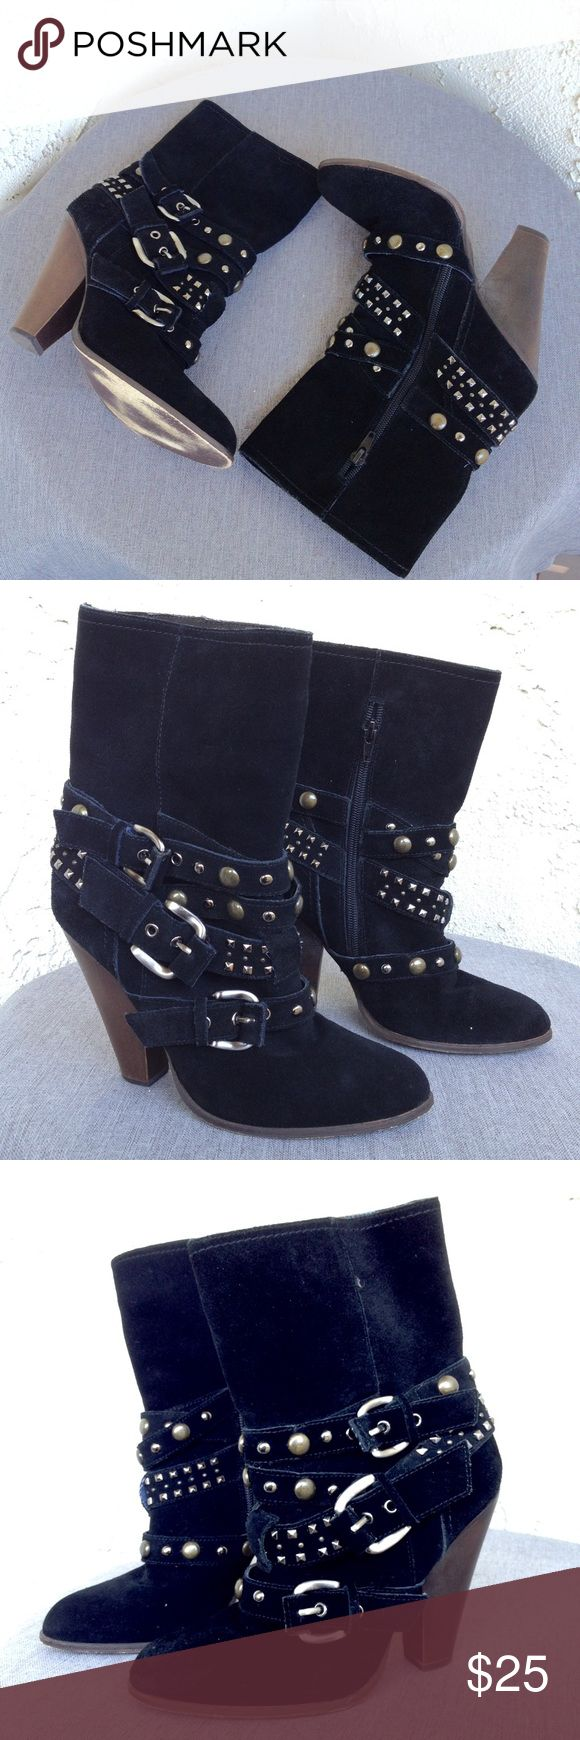 Steve Madden Black Leather Studded Ankle Boots 7.5 Gorgeous black leather stud embellished heeled booties by Steve Madden! Great condition - please see photos. Size 7.5!  Stock Number: Bin 12 Steve Madden Shoes Heeled Boots